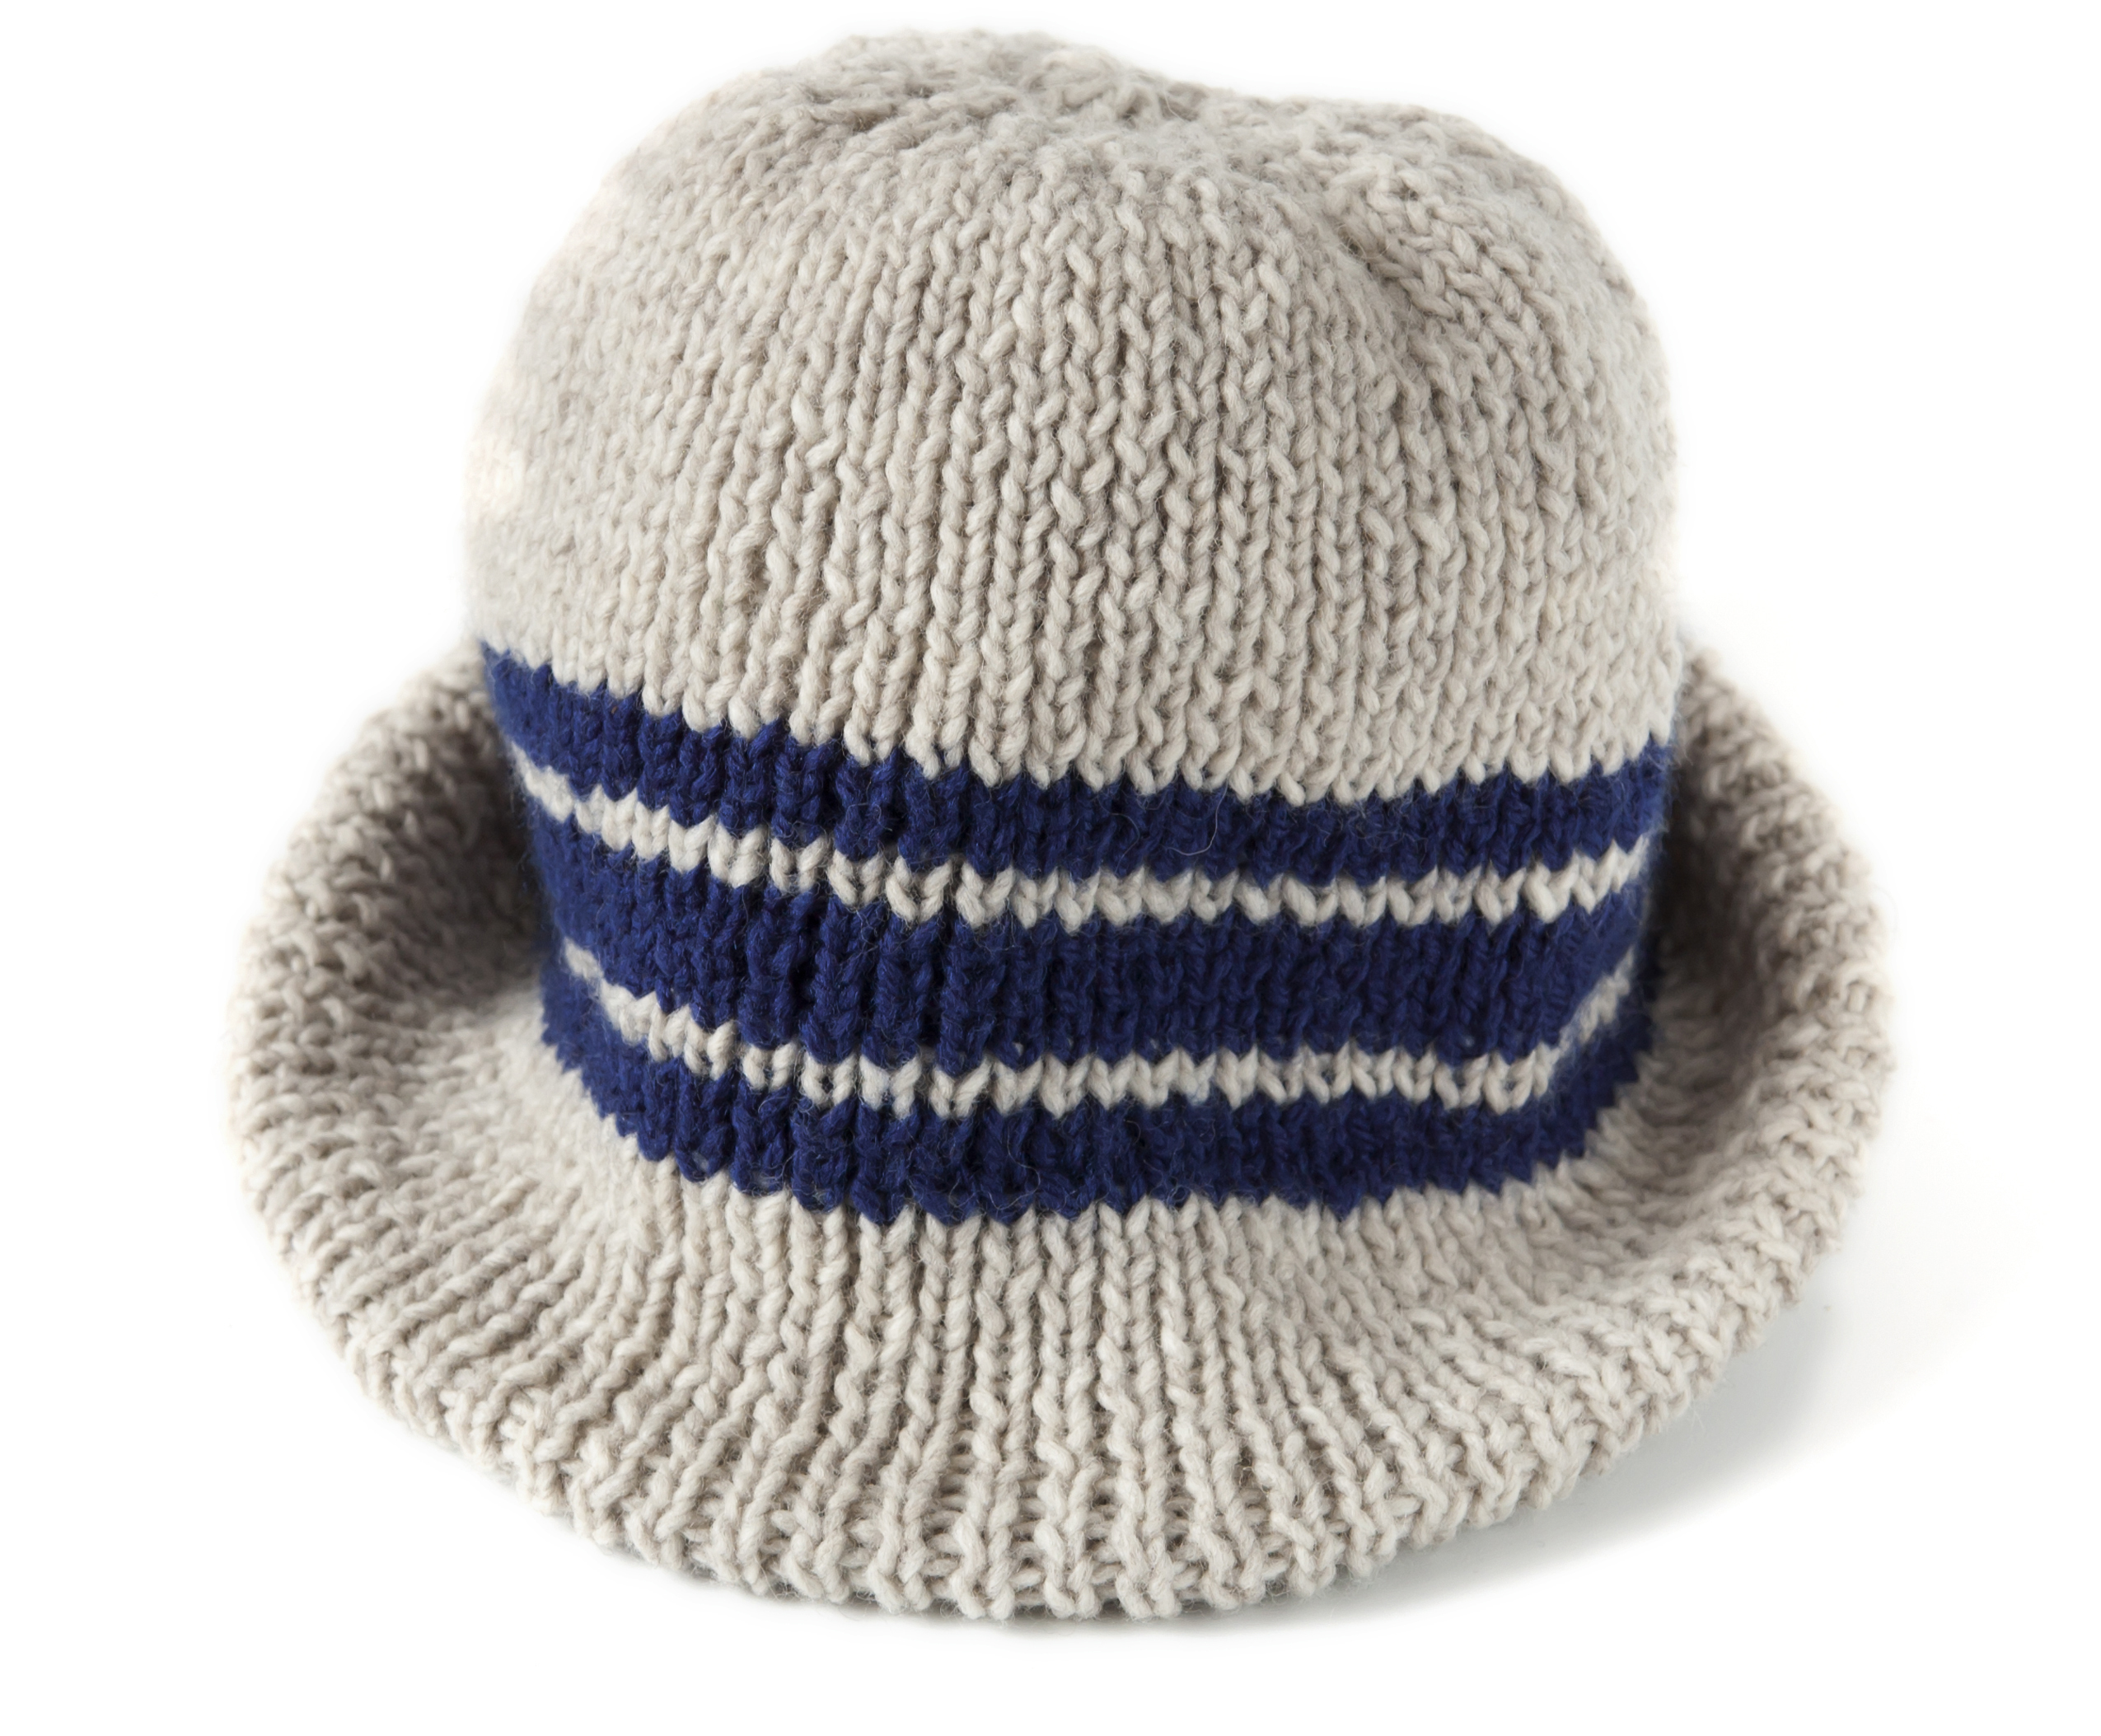 Custom made knitted hats